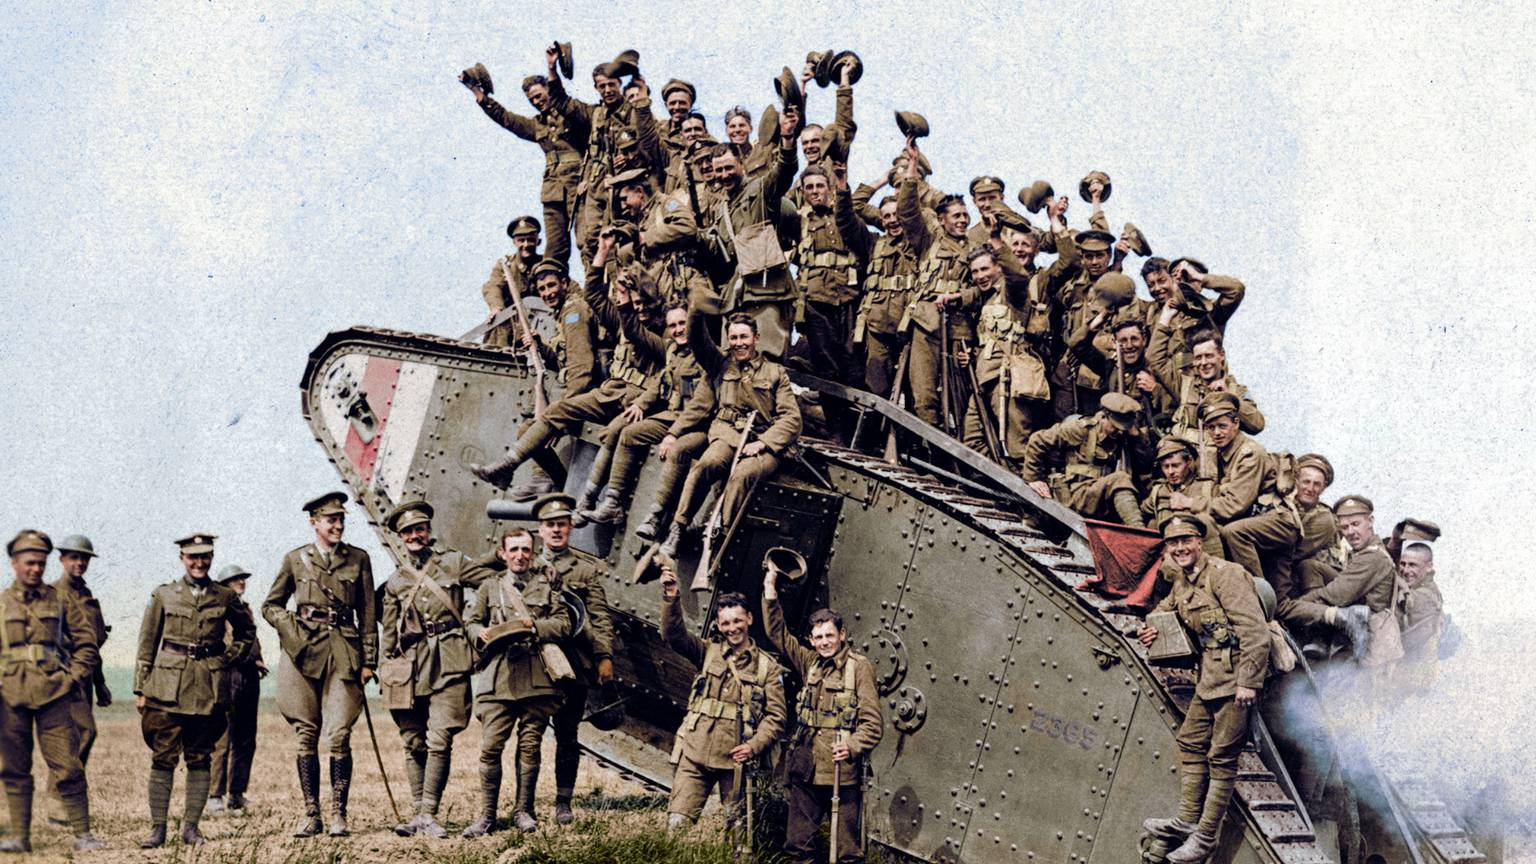 Colourized Images Show First World War In A New Light